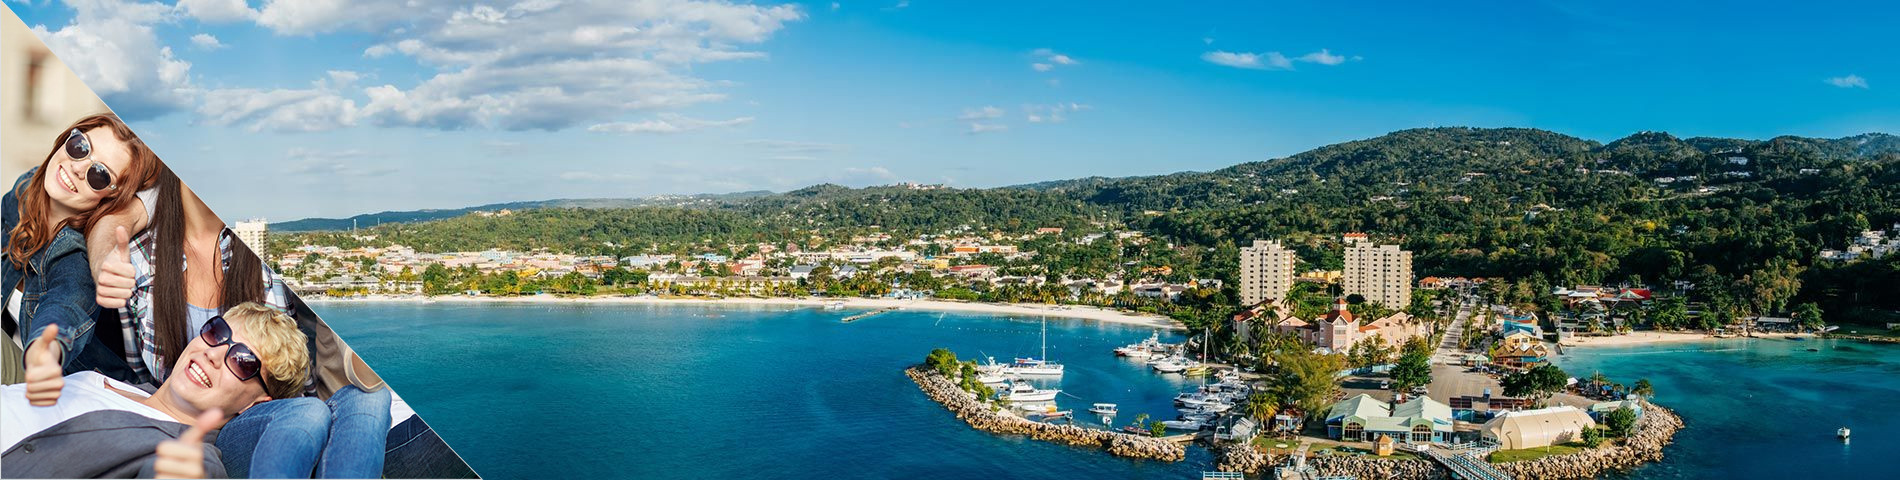 Ocho Rios - Voyages scolaires / Groupes